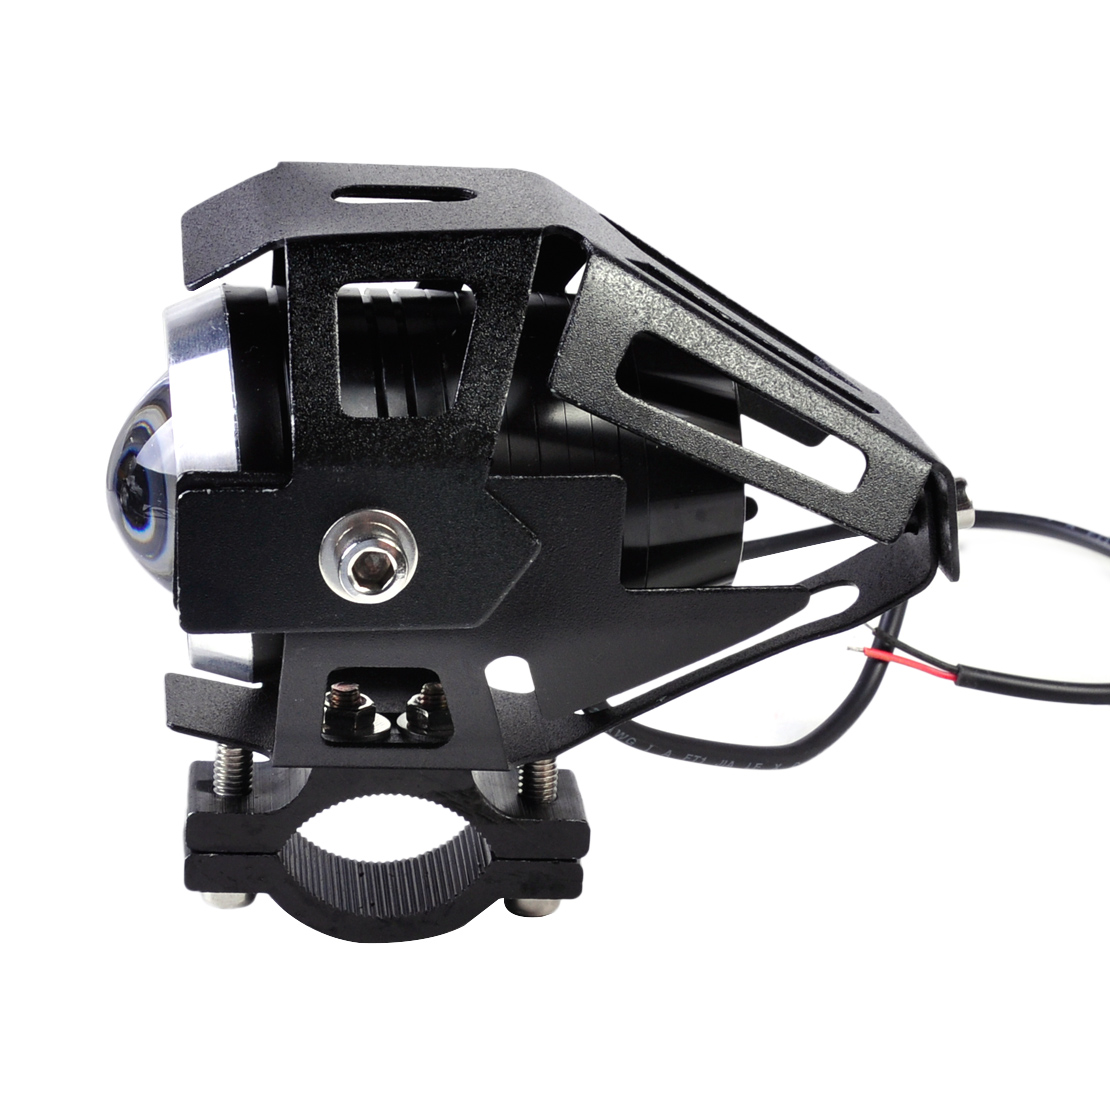 Led Spotlight Headlamp: 2pcs Black U5 Driving Headlight LED Spotlight Fog Light